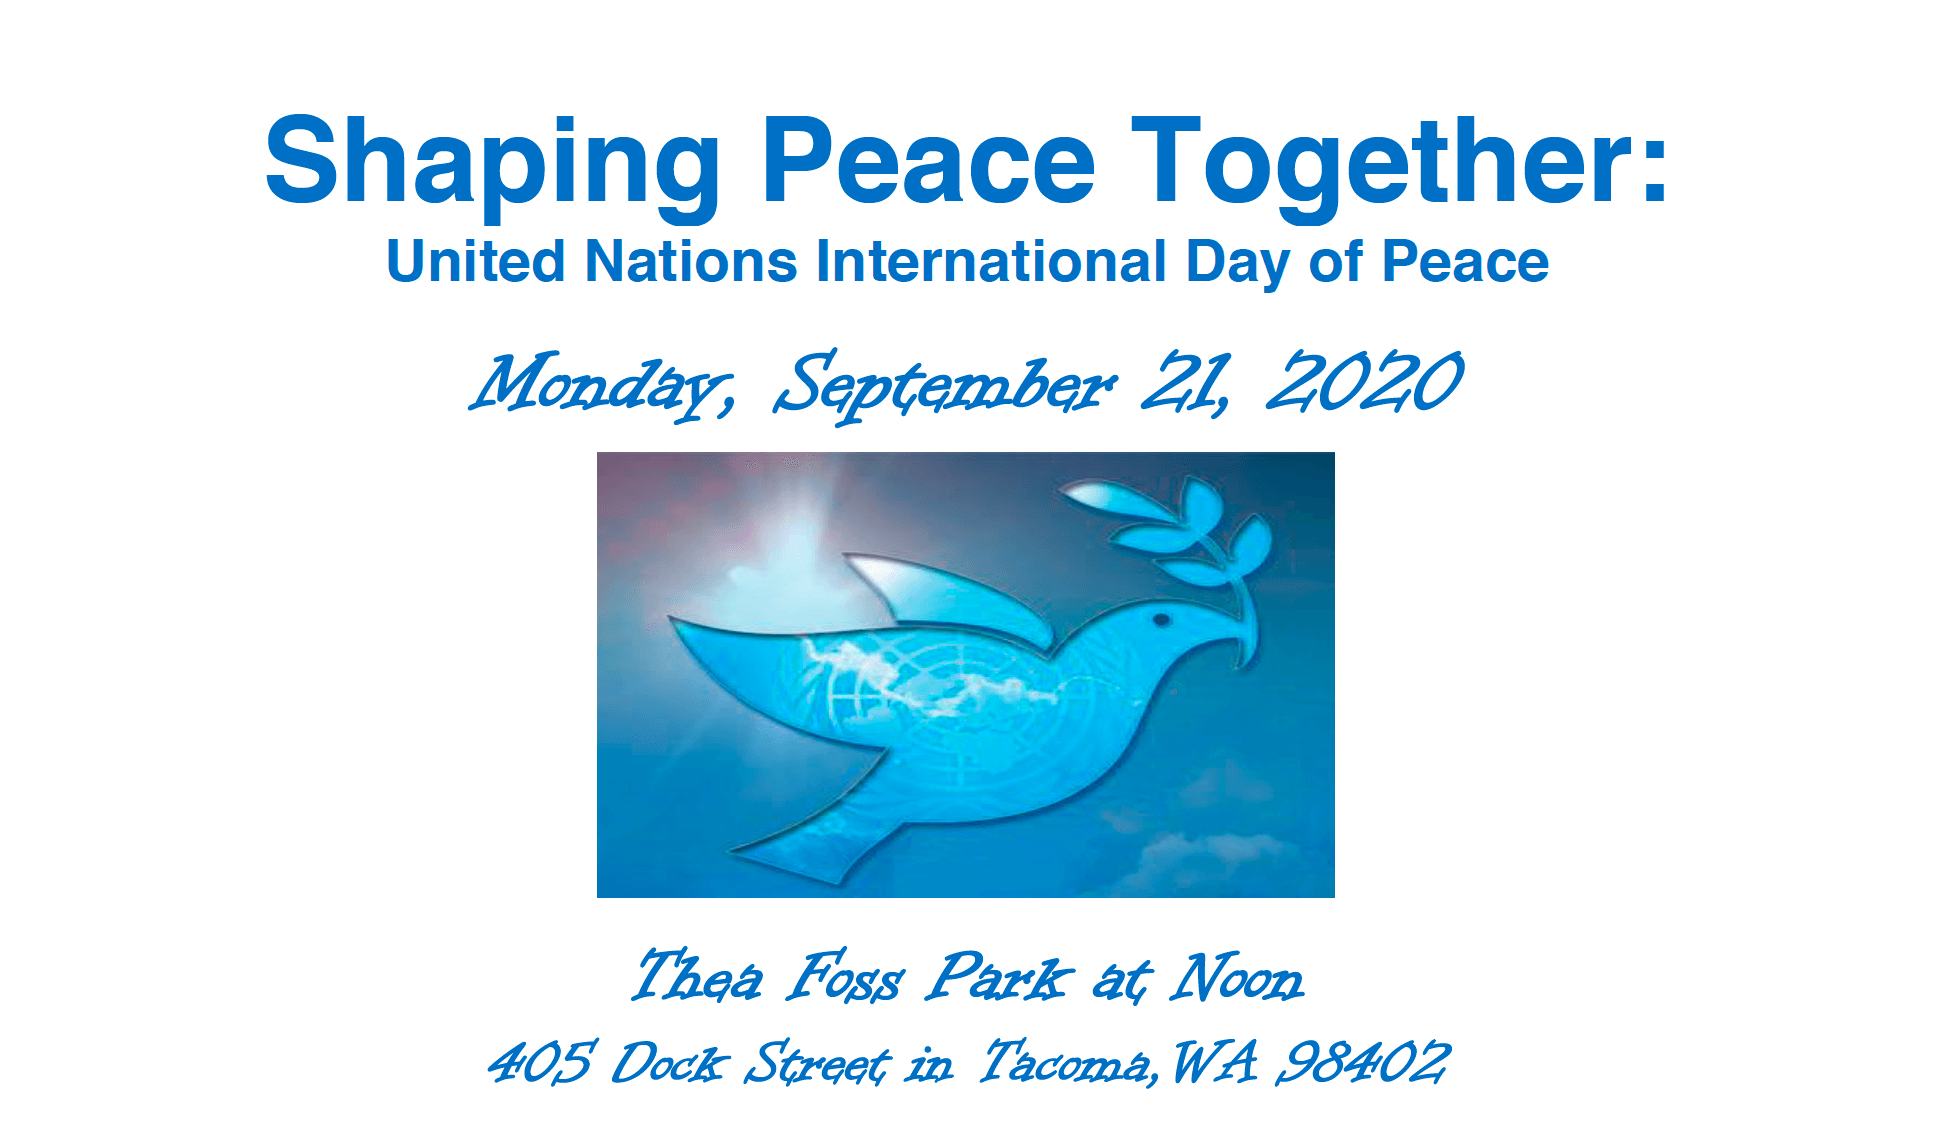 Shaping Peace Together: UN International Day of Peace